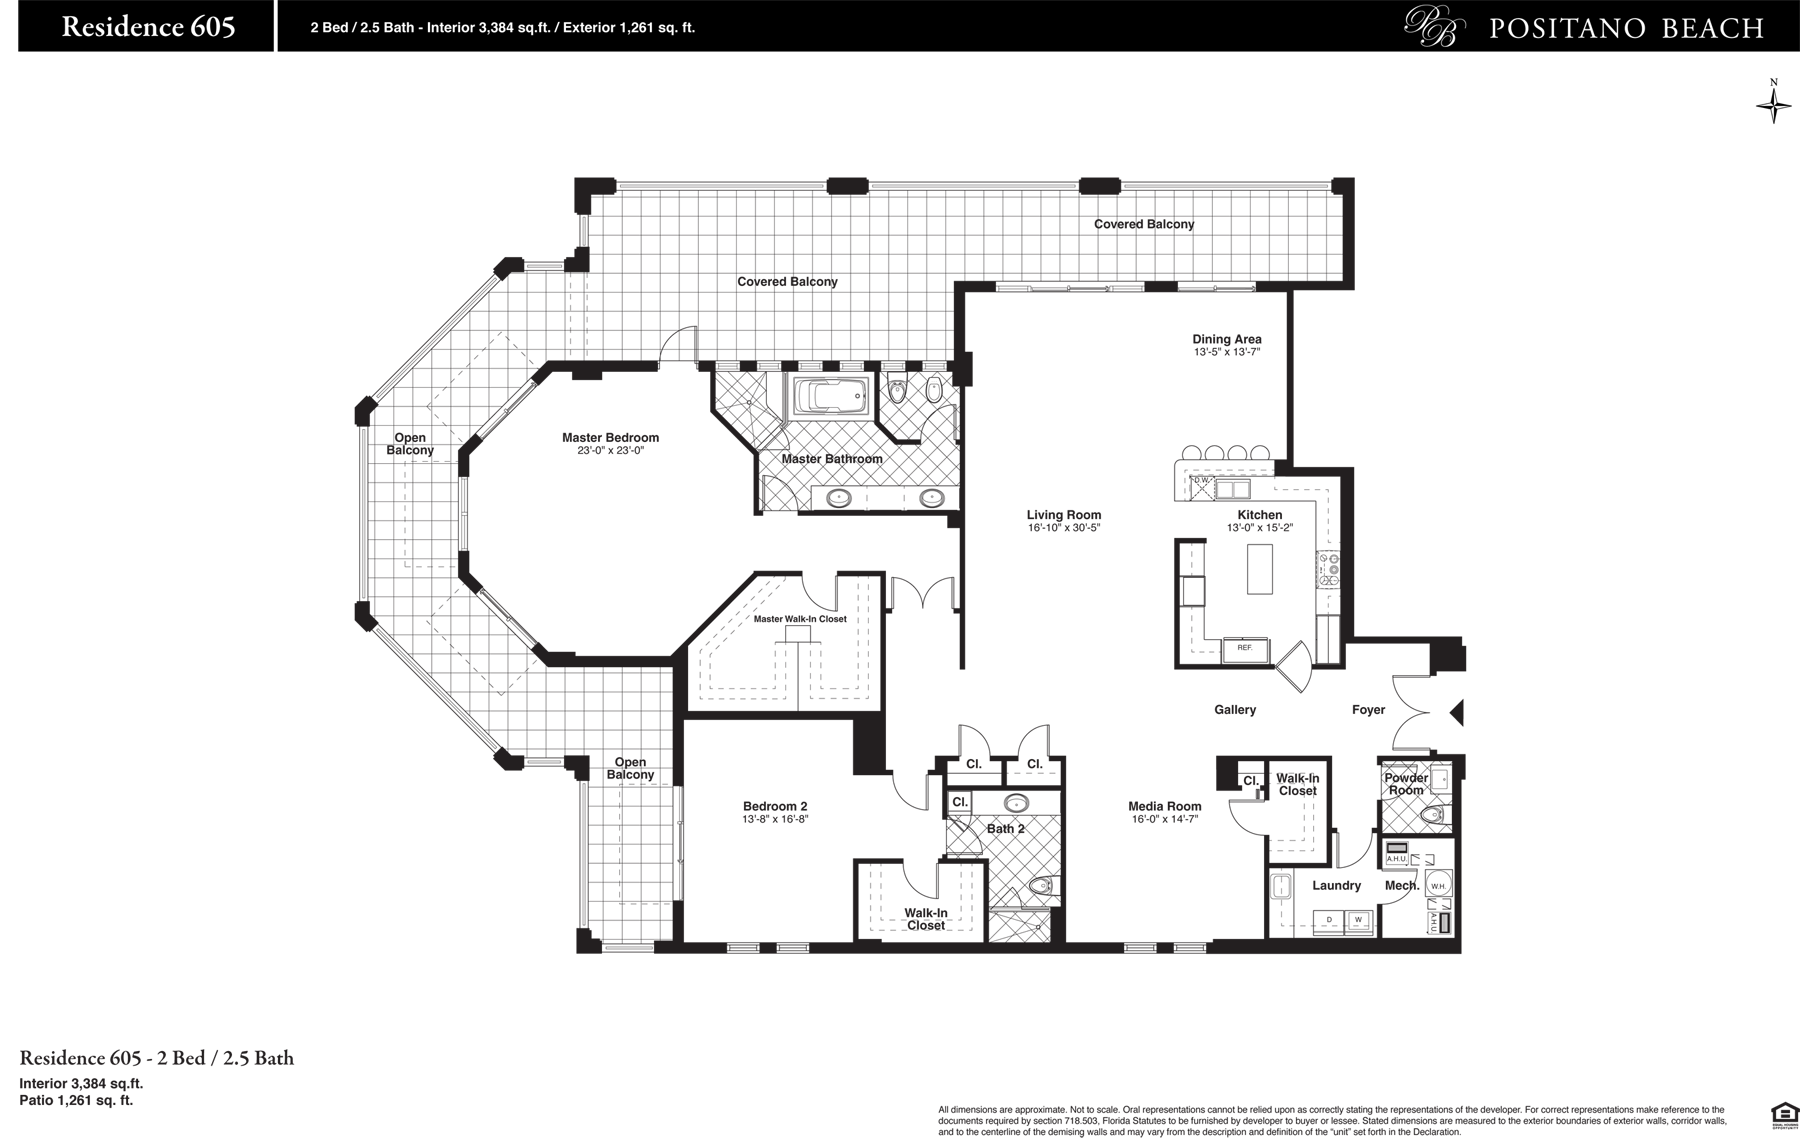 Positano Beach - Floorplan 16